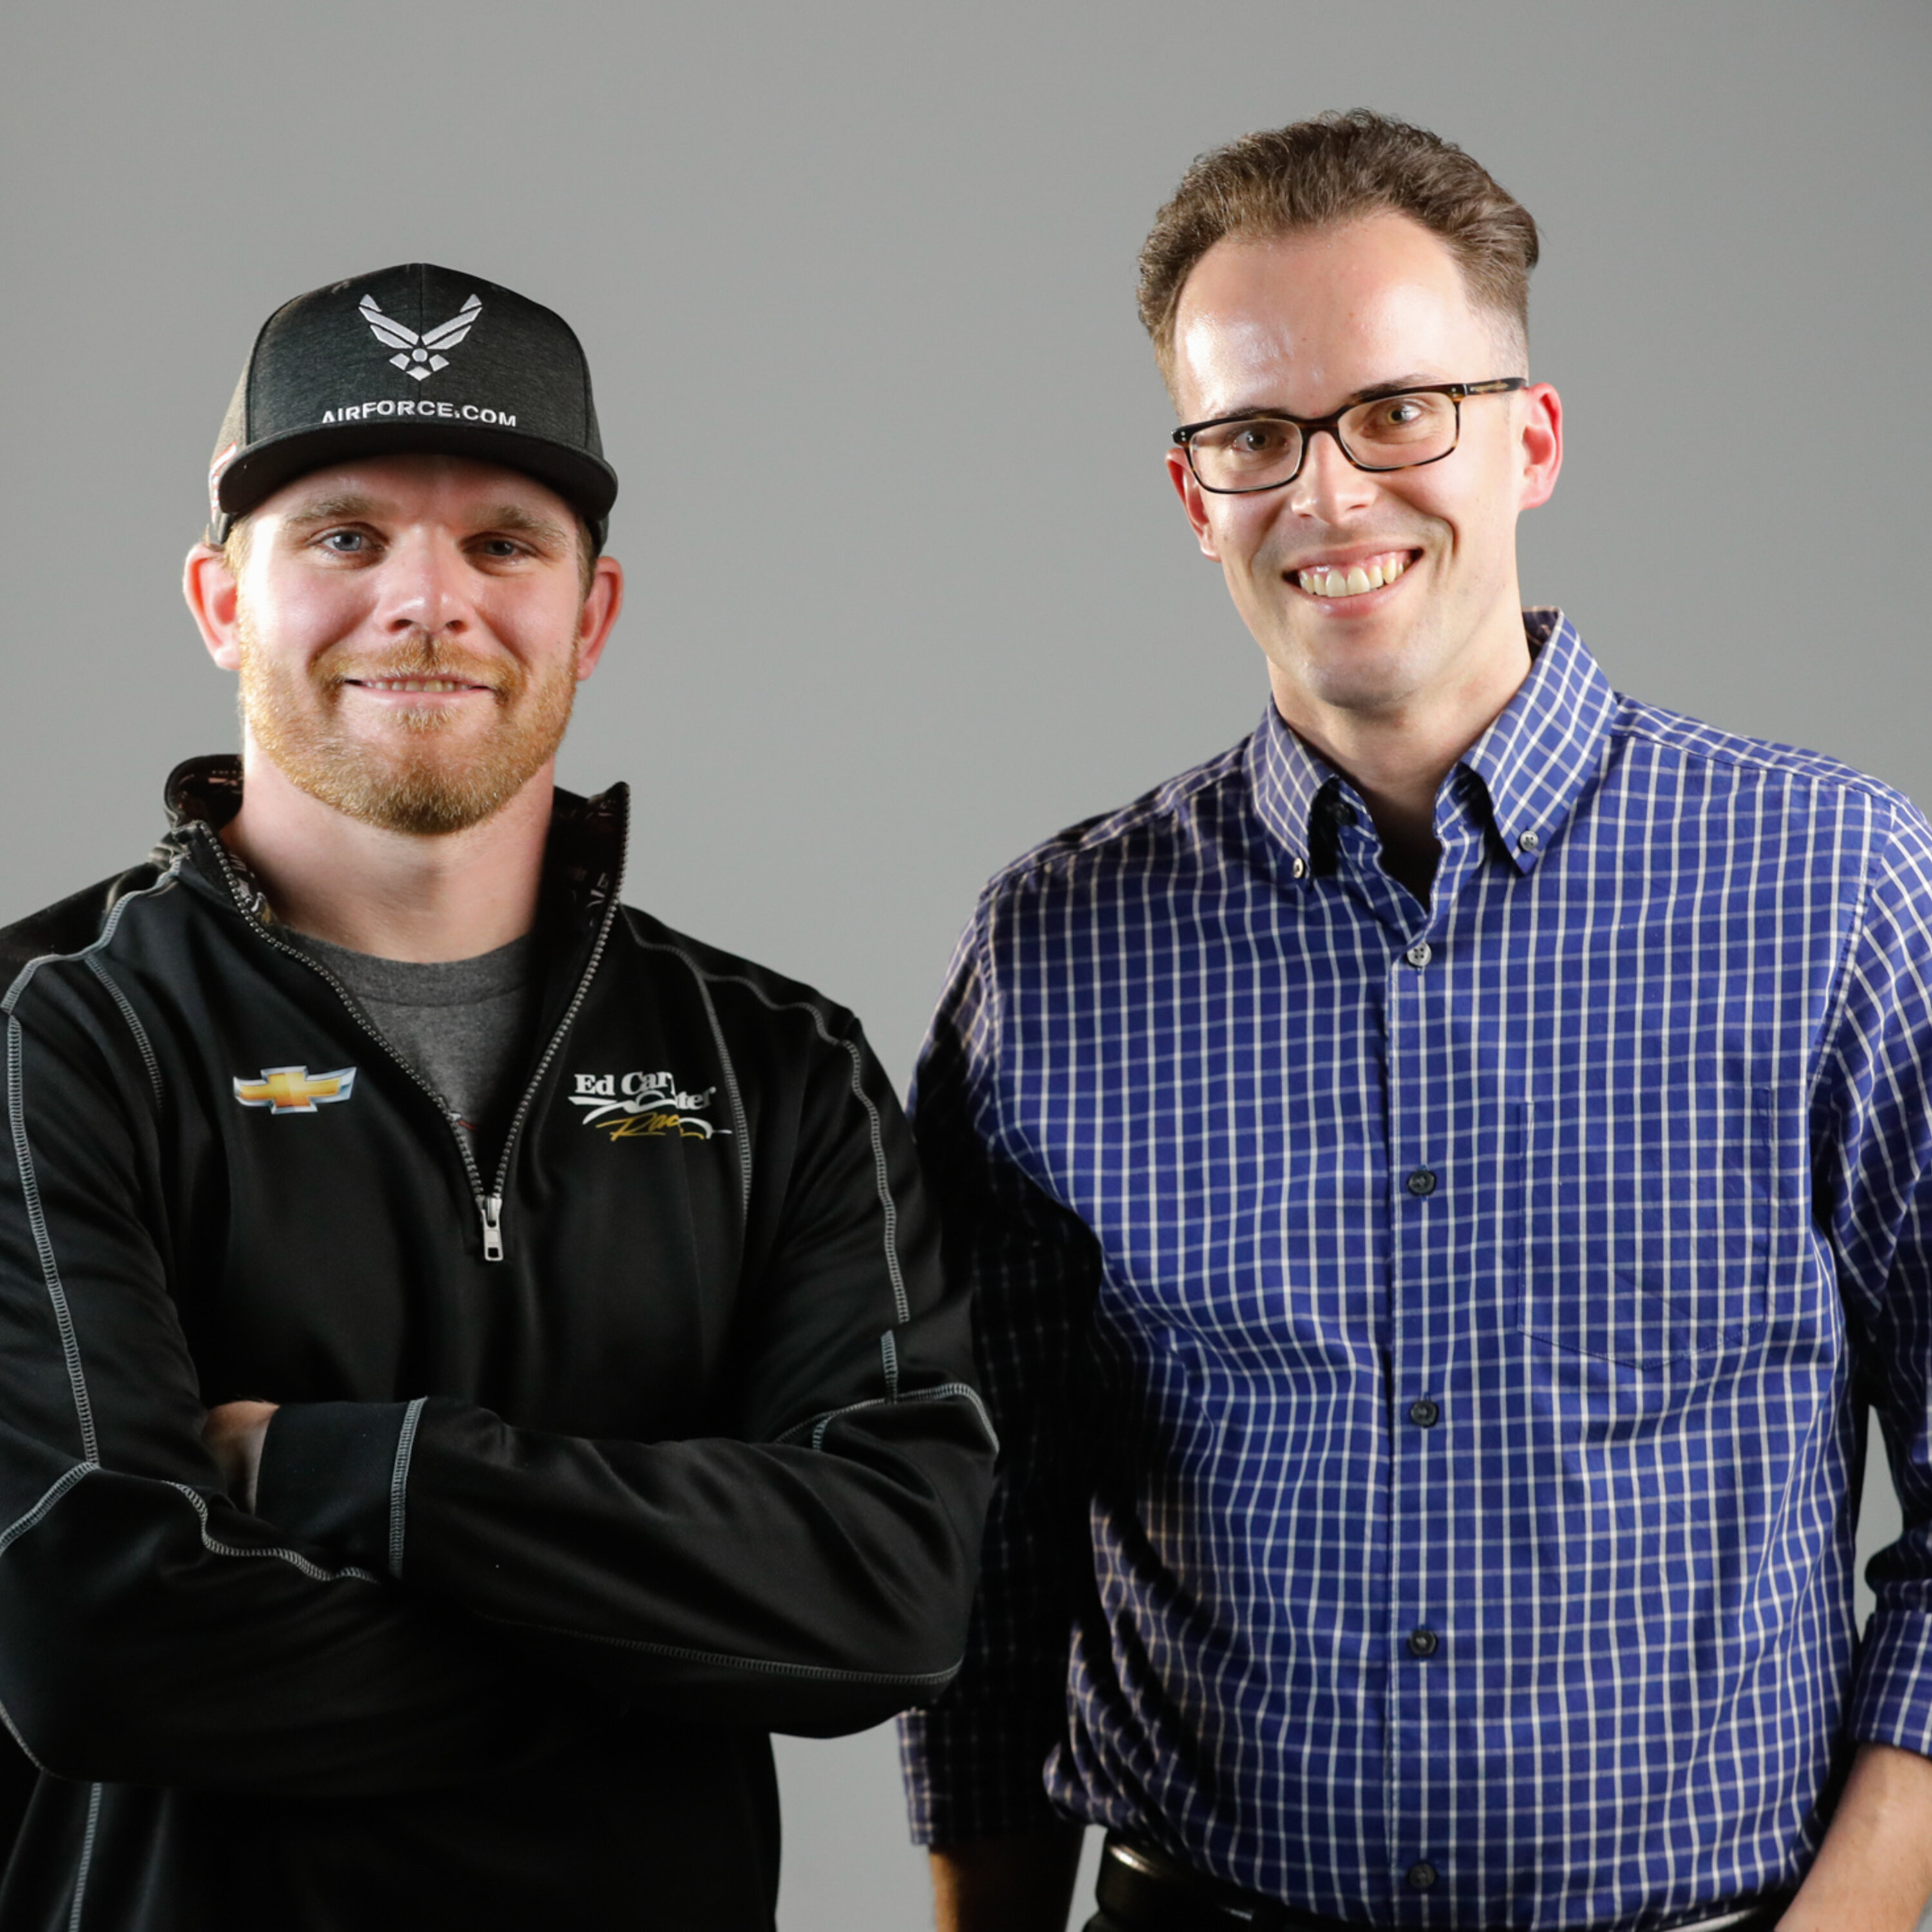 IndyCar Weekly with Conor Daly - Recapping Iowa races, Indy 500 update